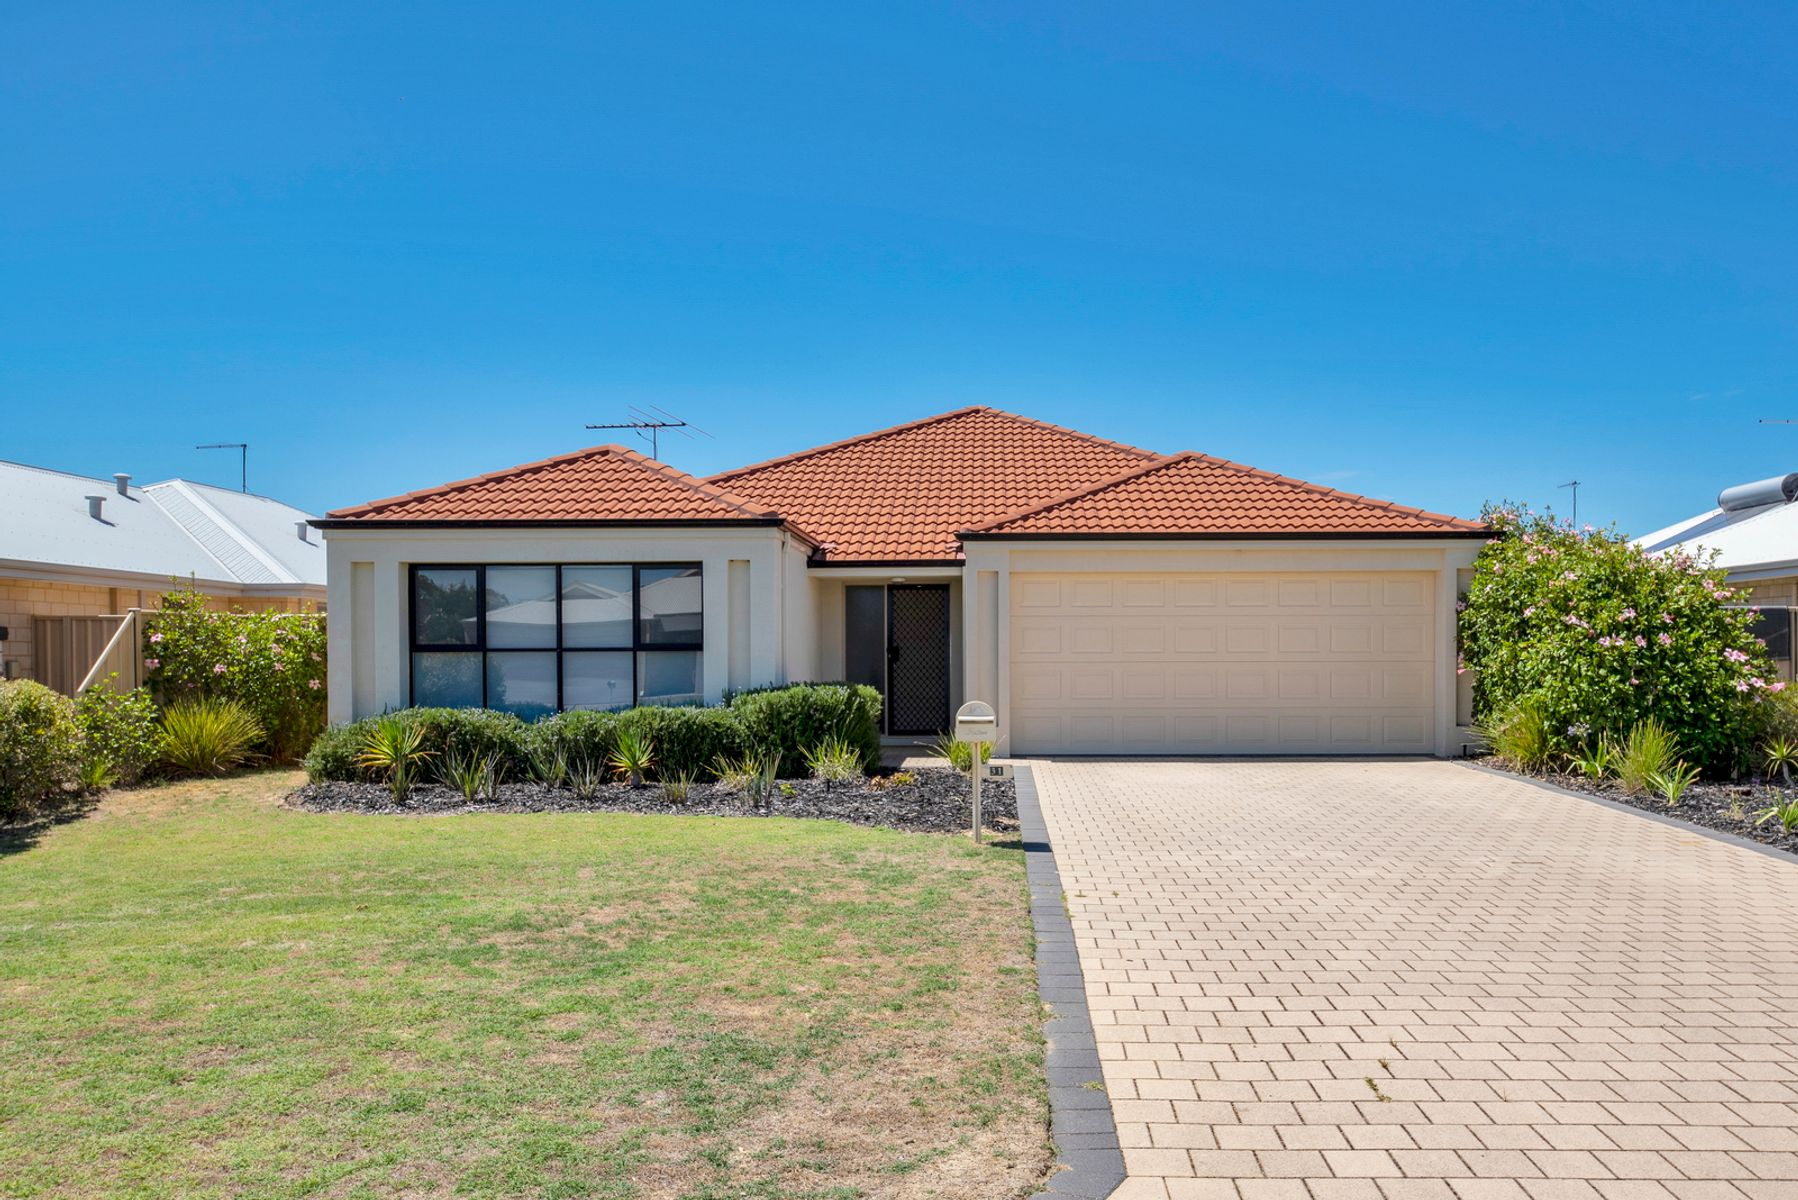 31 Cornish Way, Pinjarra, WA 6208